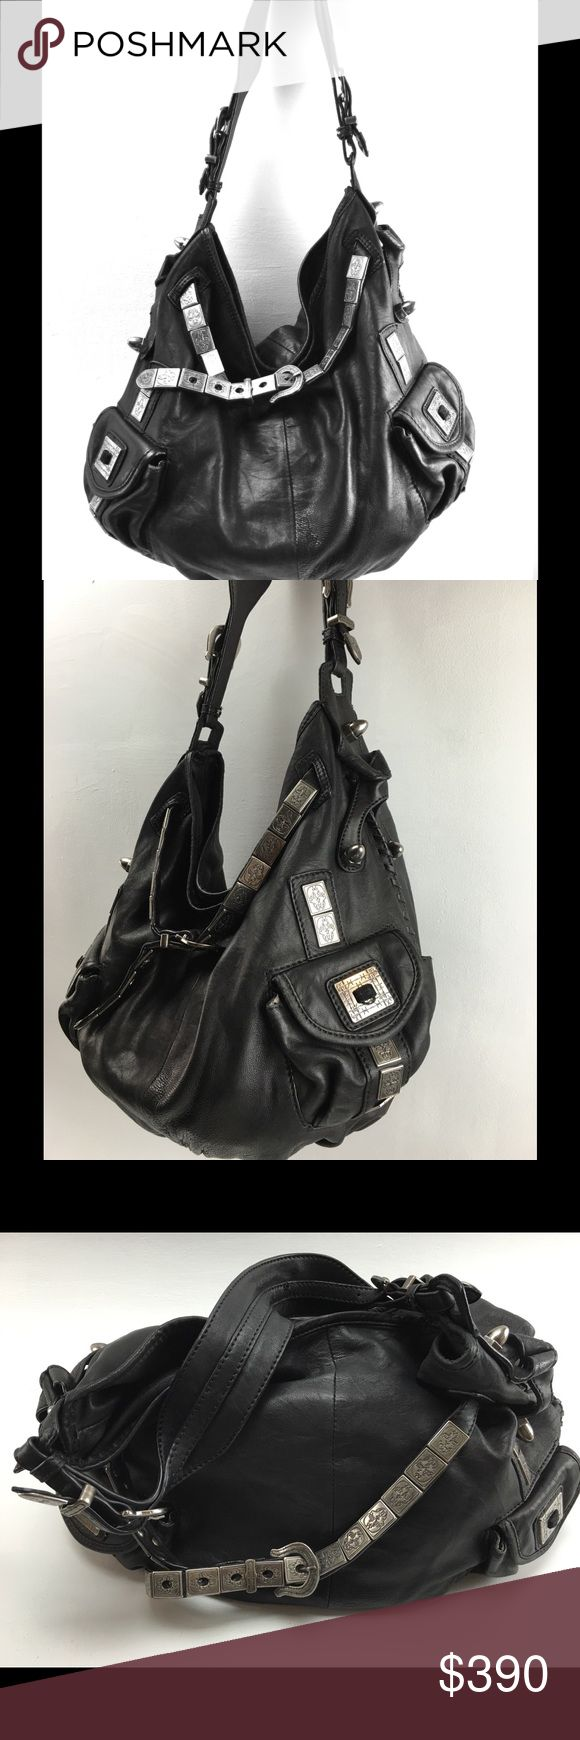 Thomas Wylde Large Handbags Purse Pre-owned Thomas Wylde Handbag great condition. Please, view all photos carefully end enlarge as necessary for condition. Please, contact me if have any question. Thomas Wylde Bags Shoulder Bags